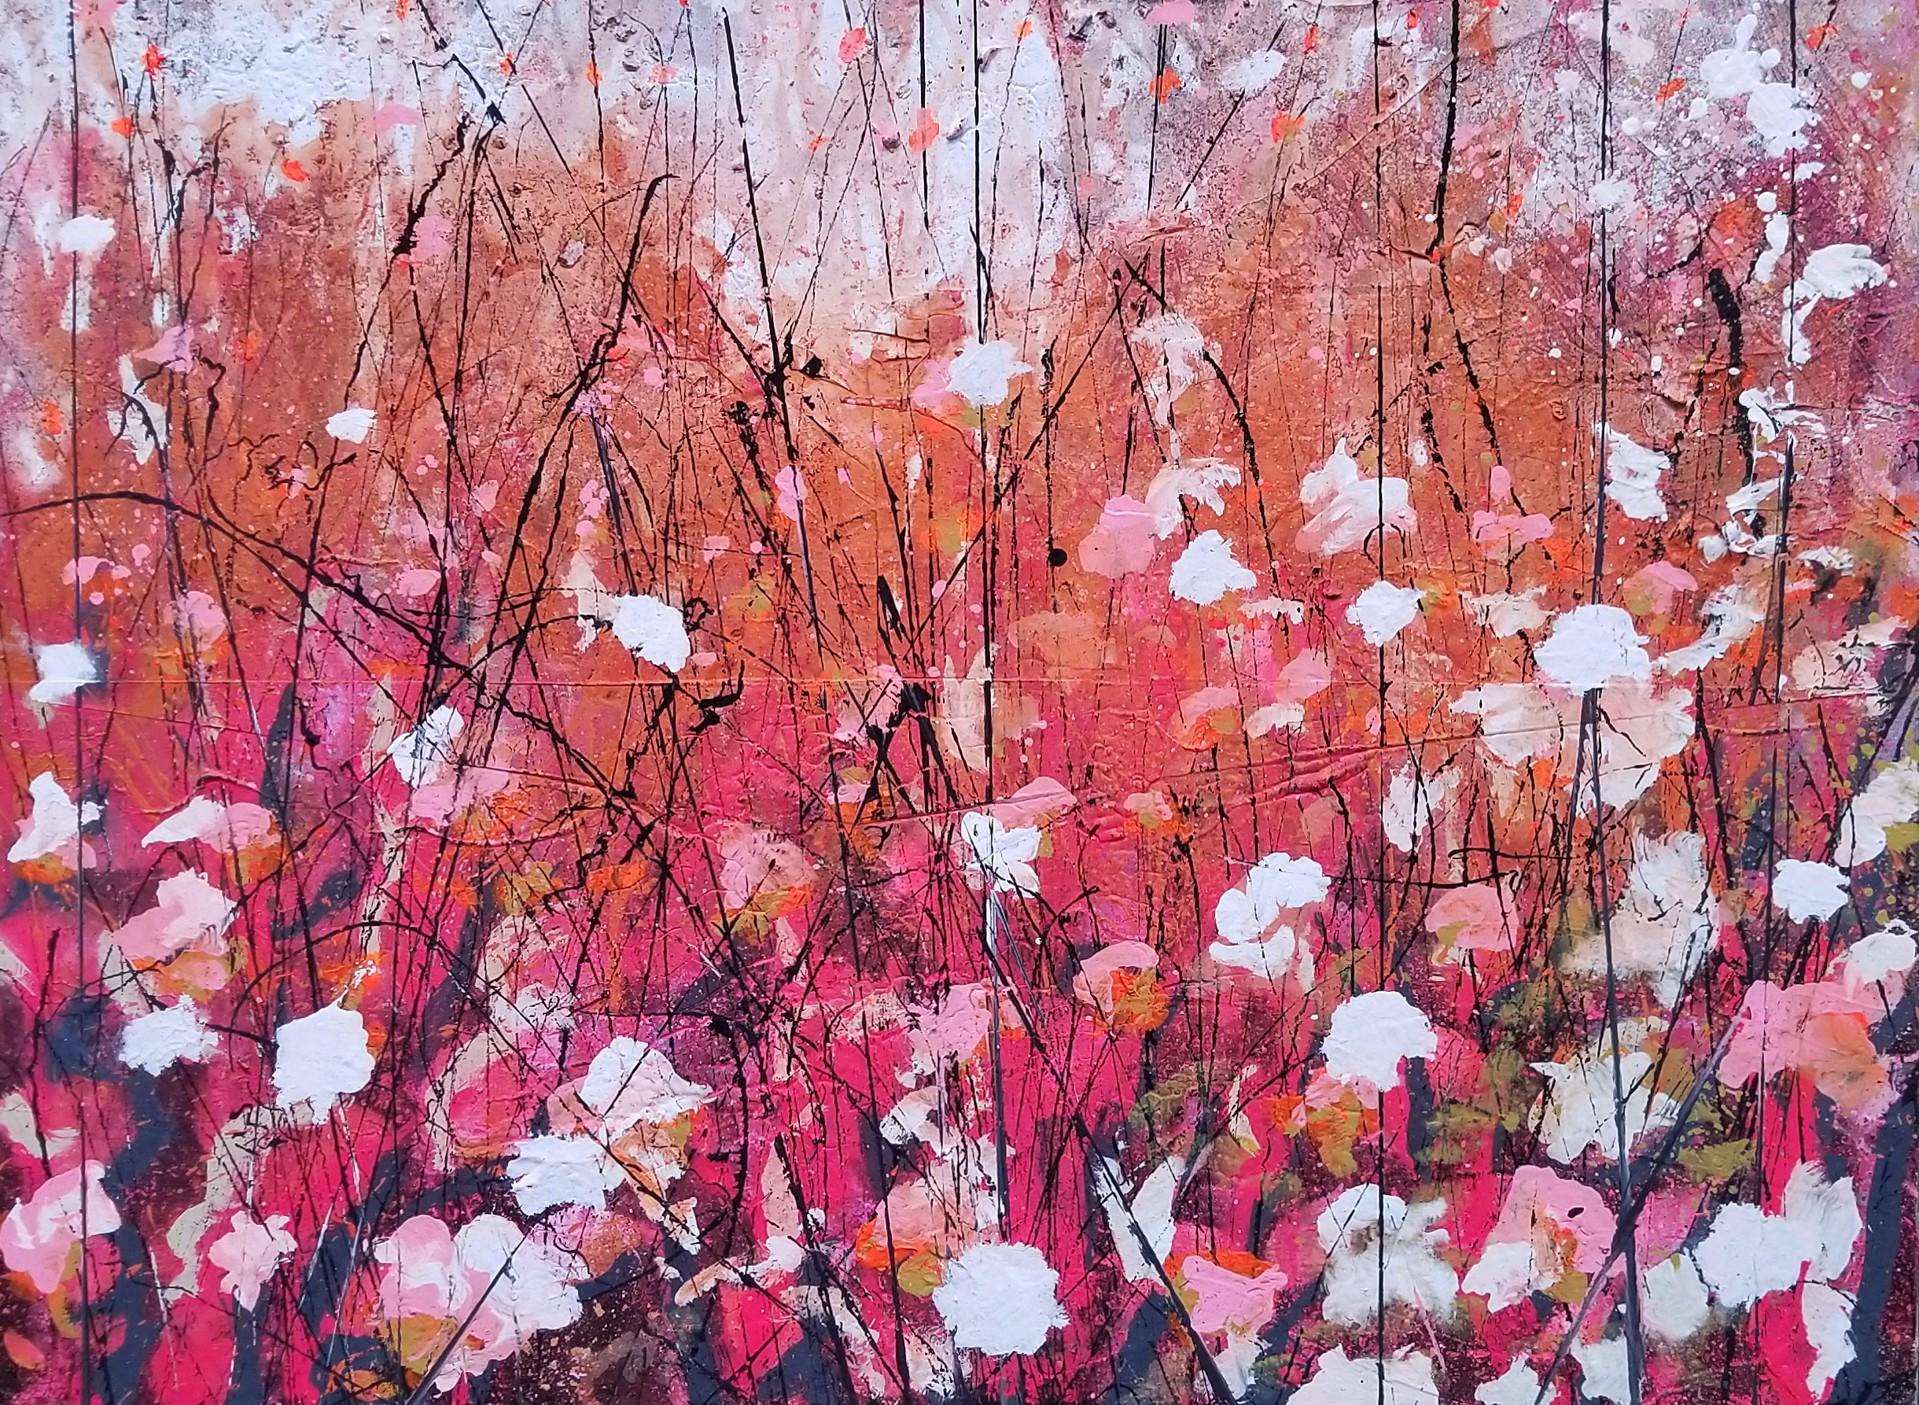 Blissful Blossoms by Kevin Greer